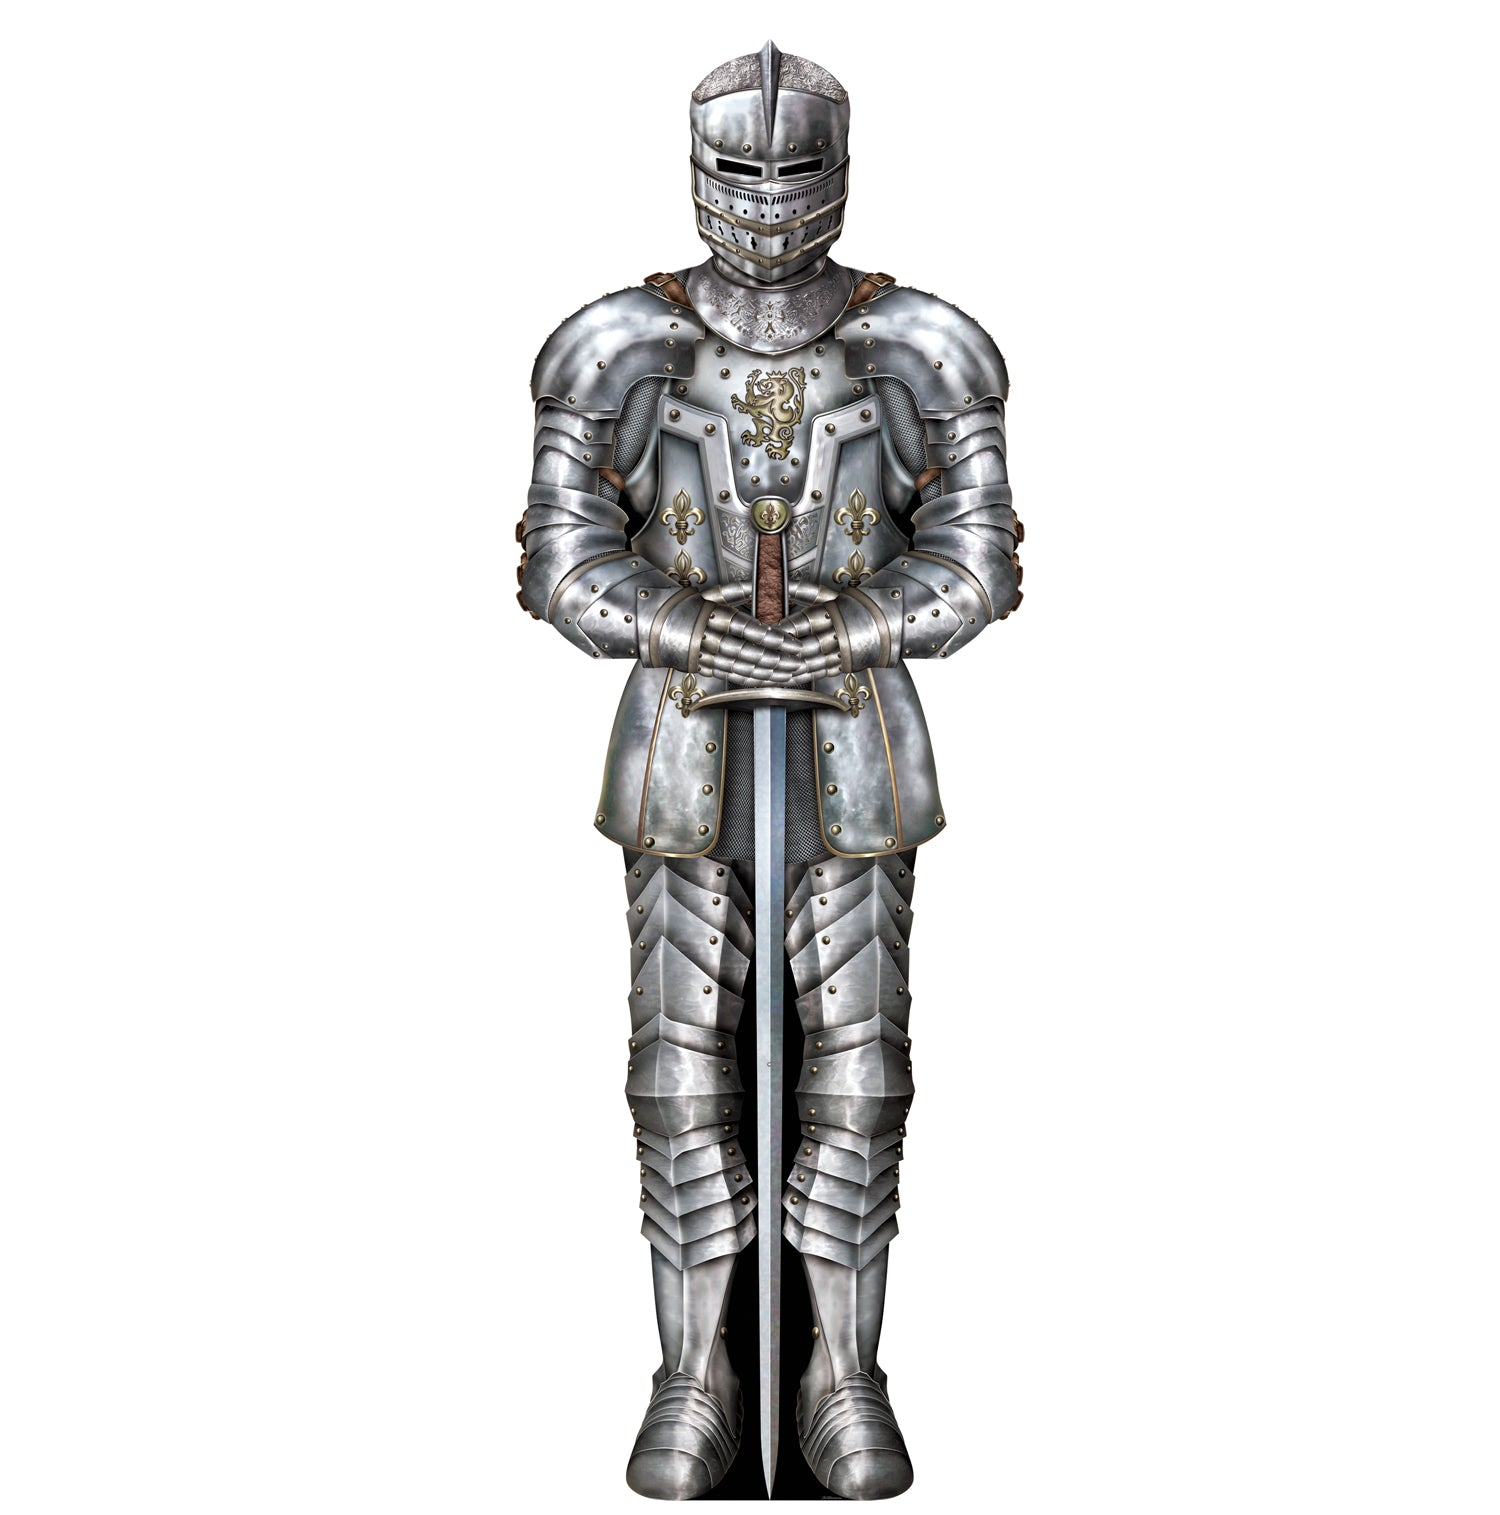 Suit Of Armor Cutout by Beistle - Medieval Theme Decorations